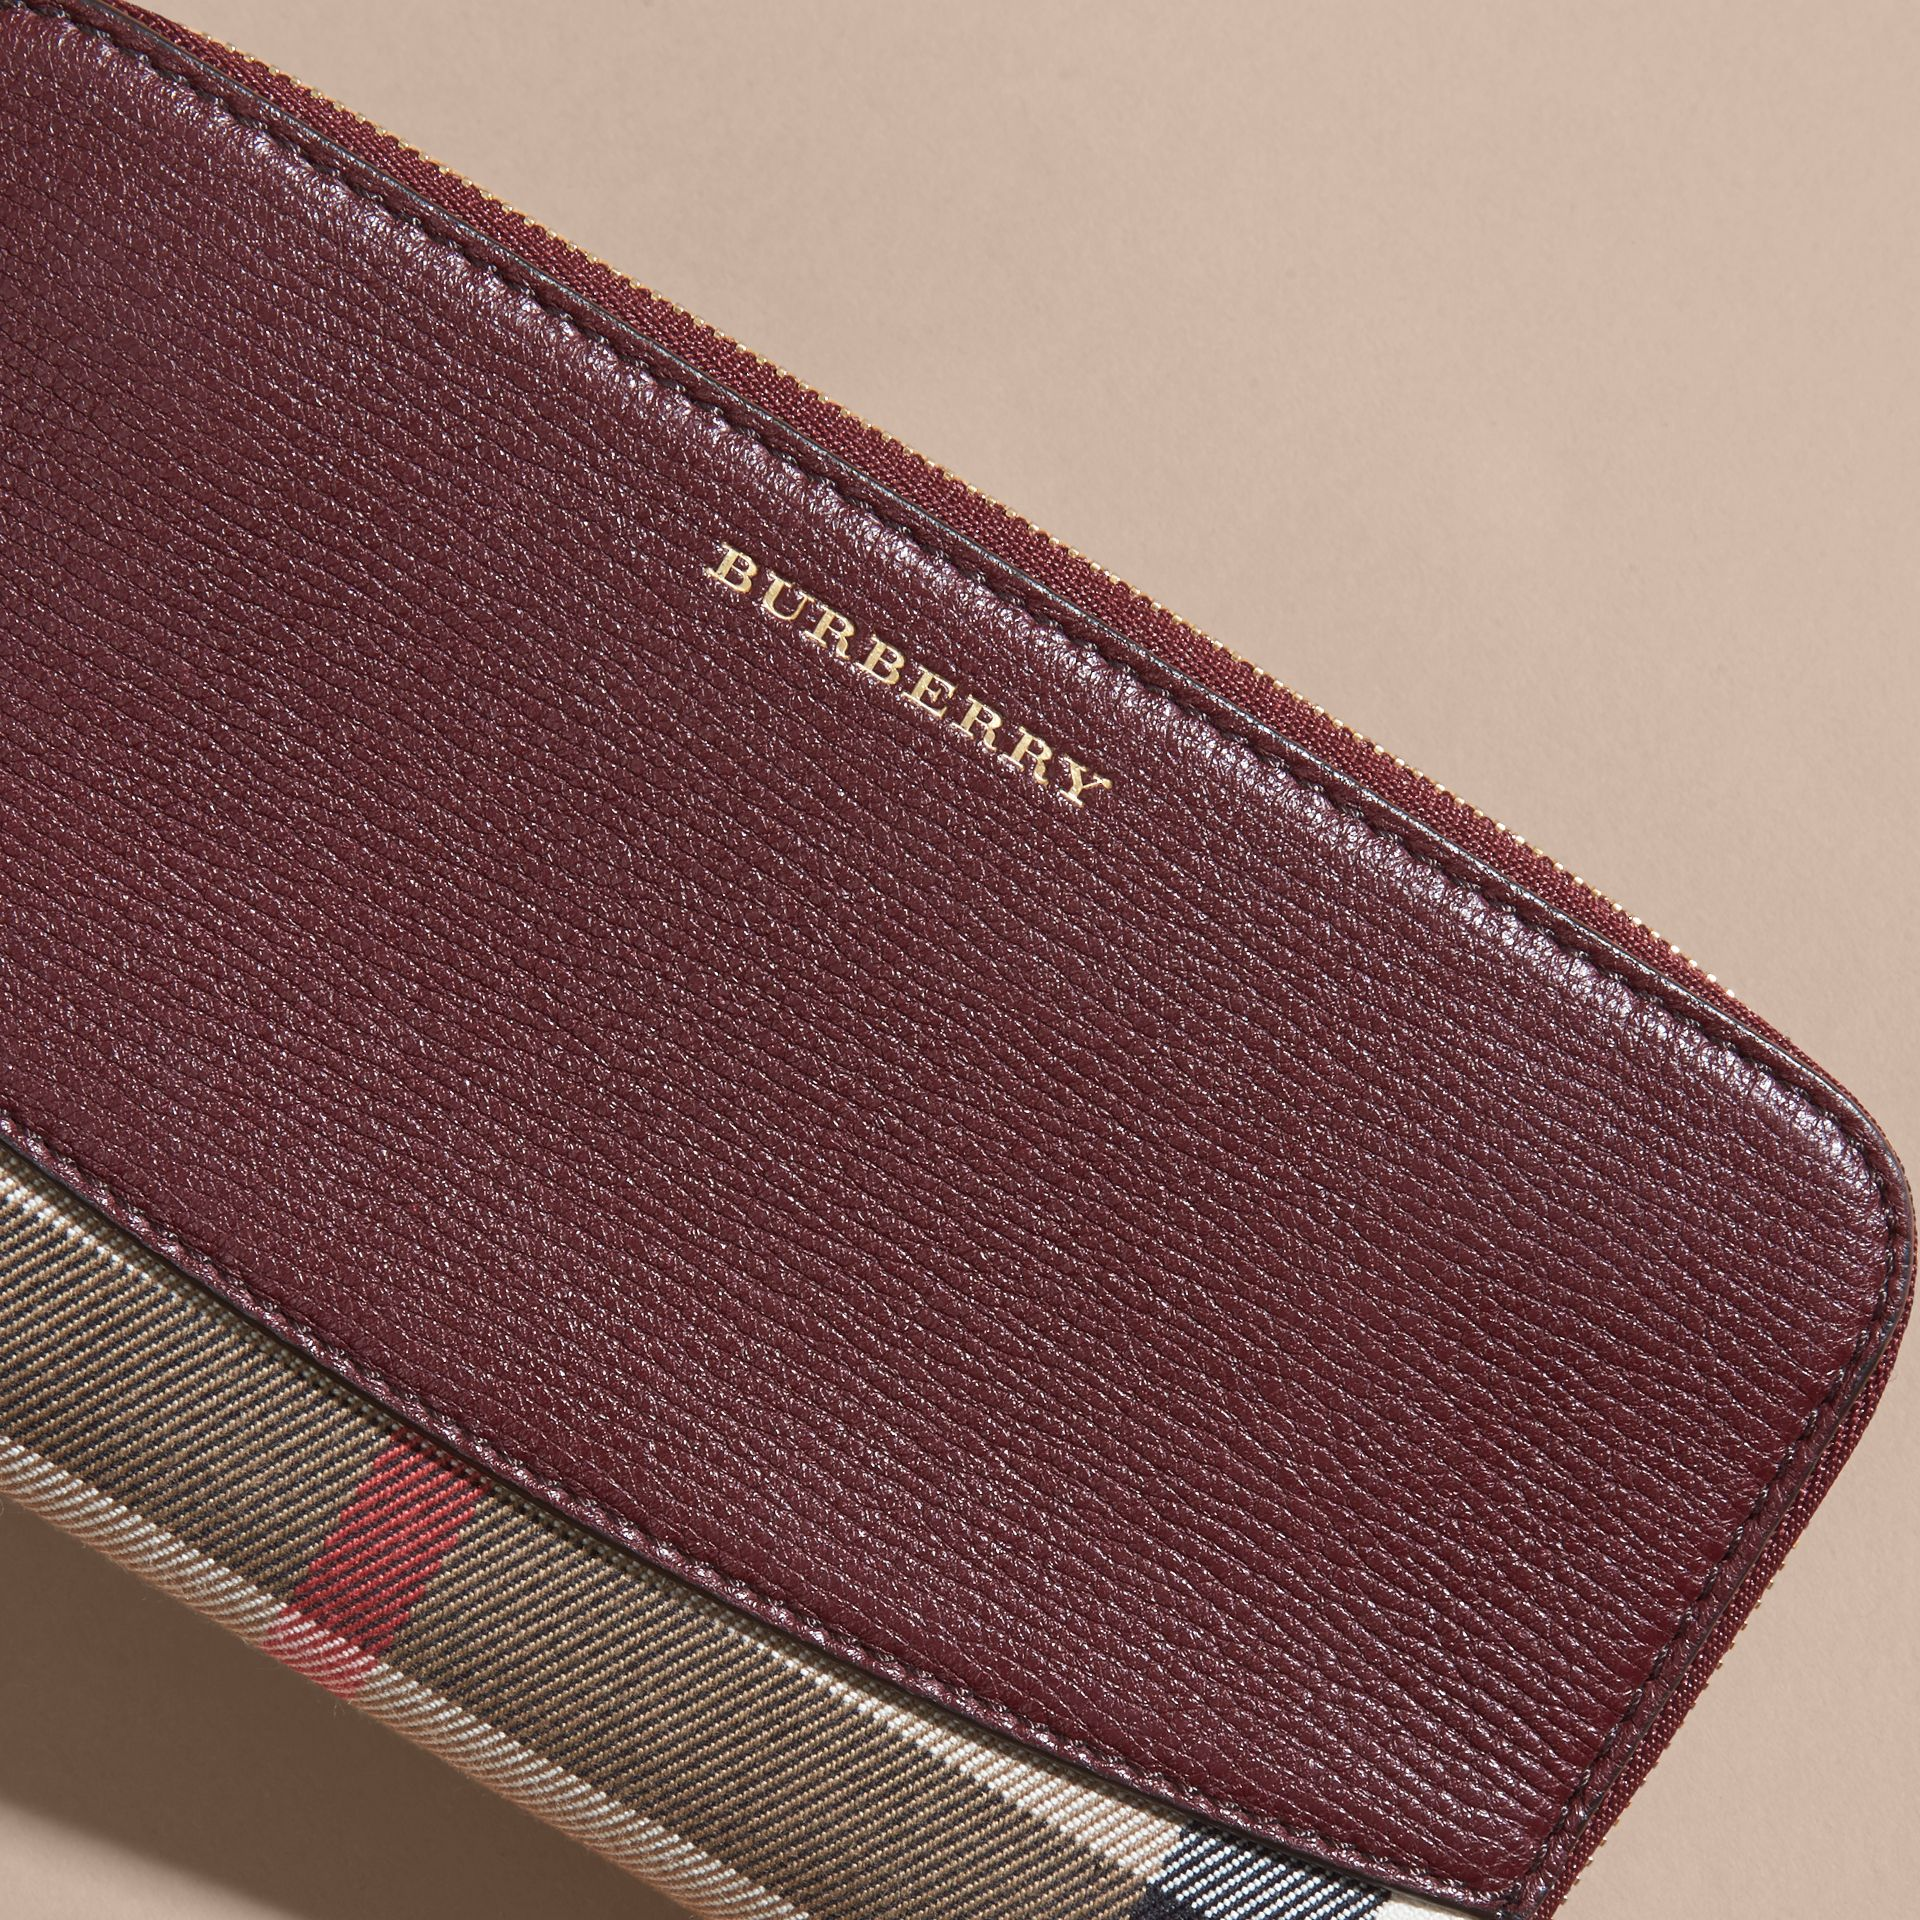 Mahogany red House Check and Leather Ziparound Wallet Mahogany Red - gallery image 4